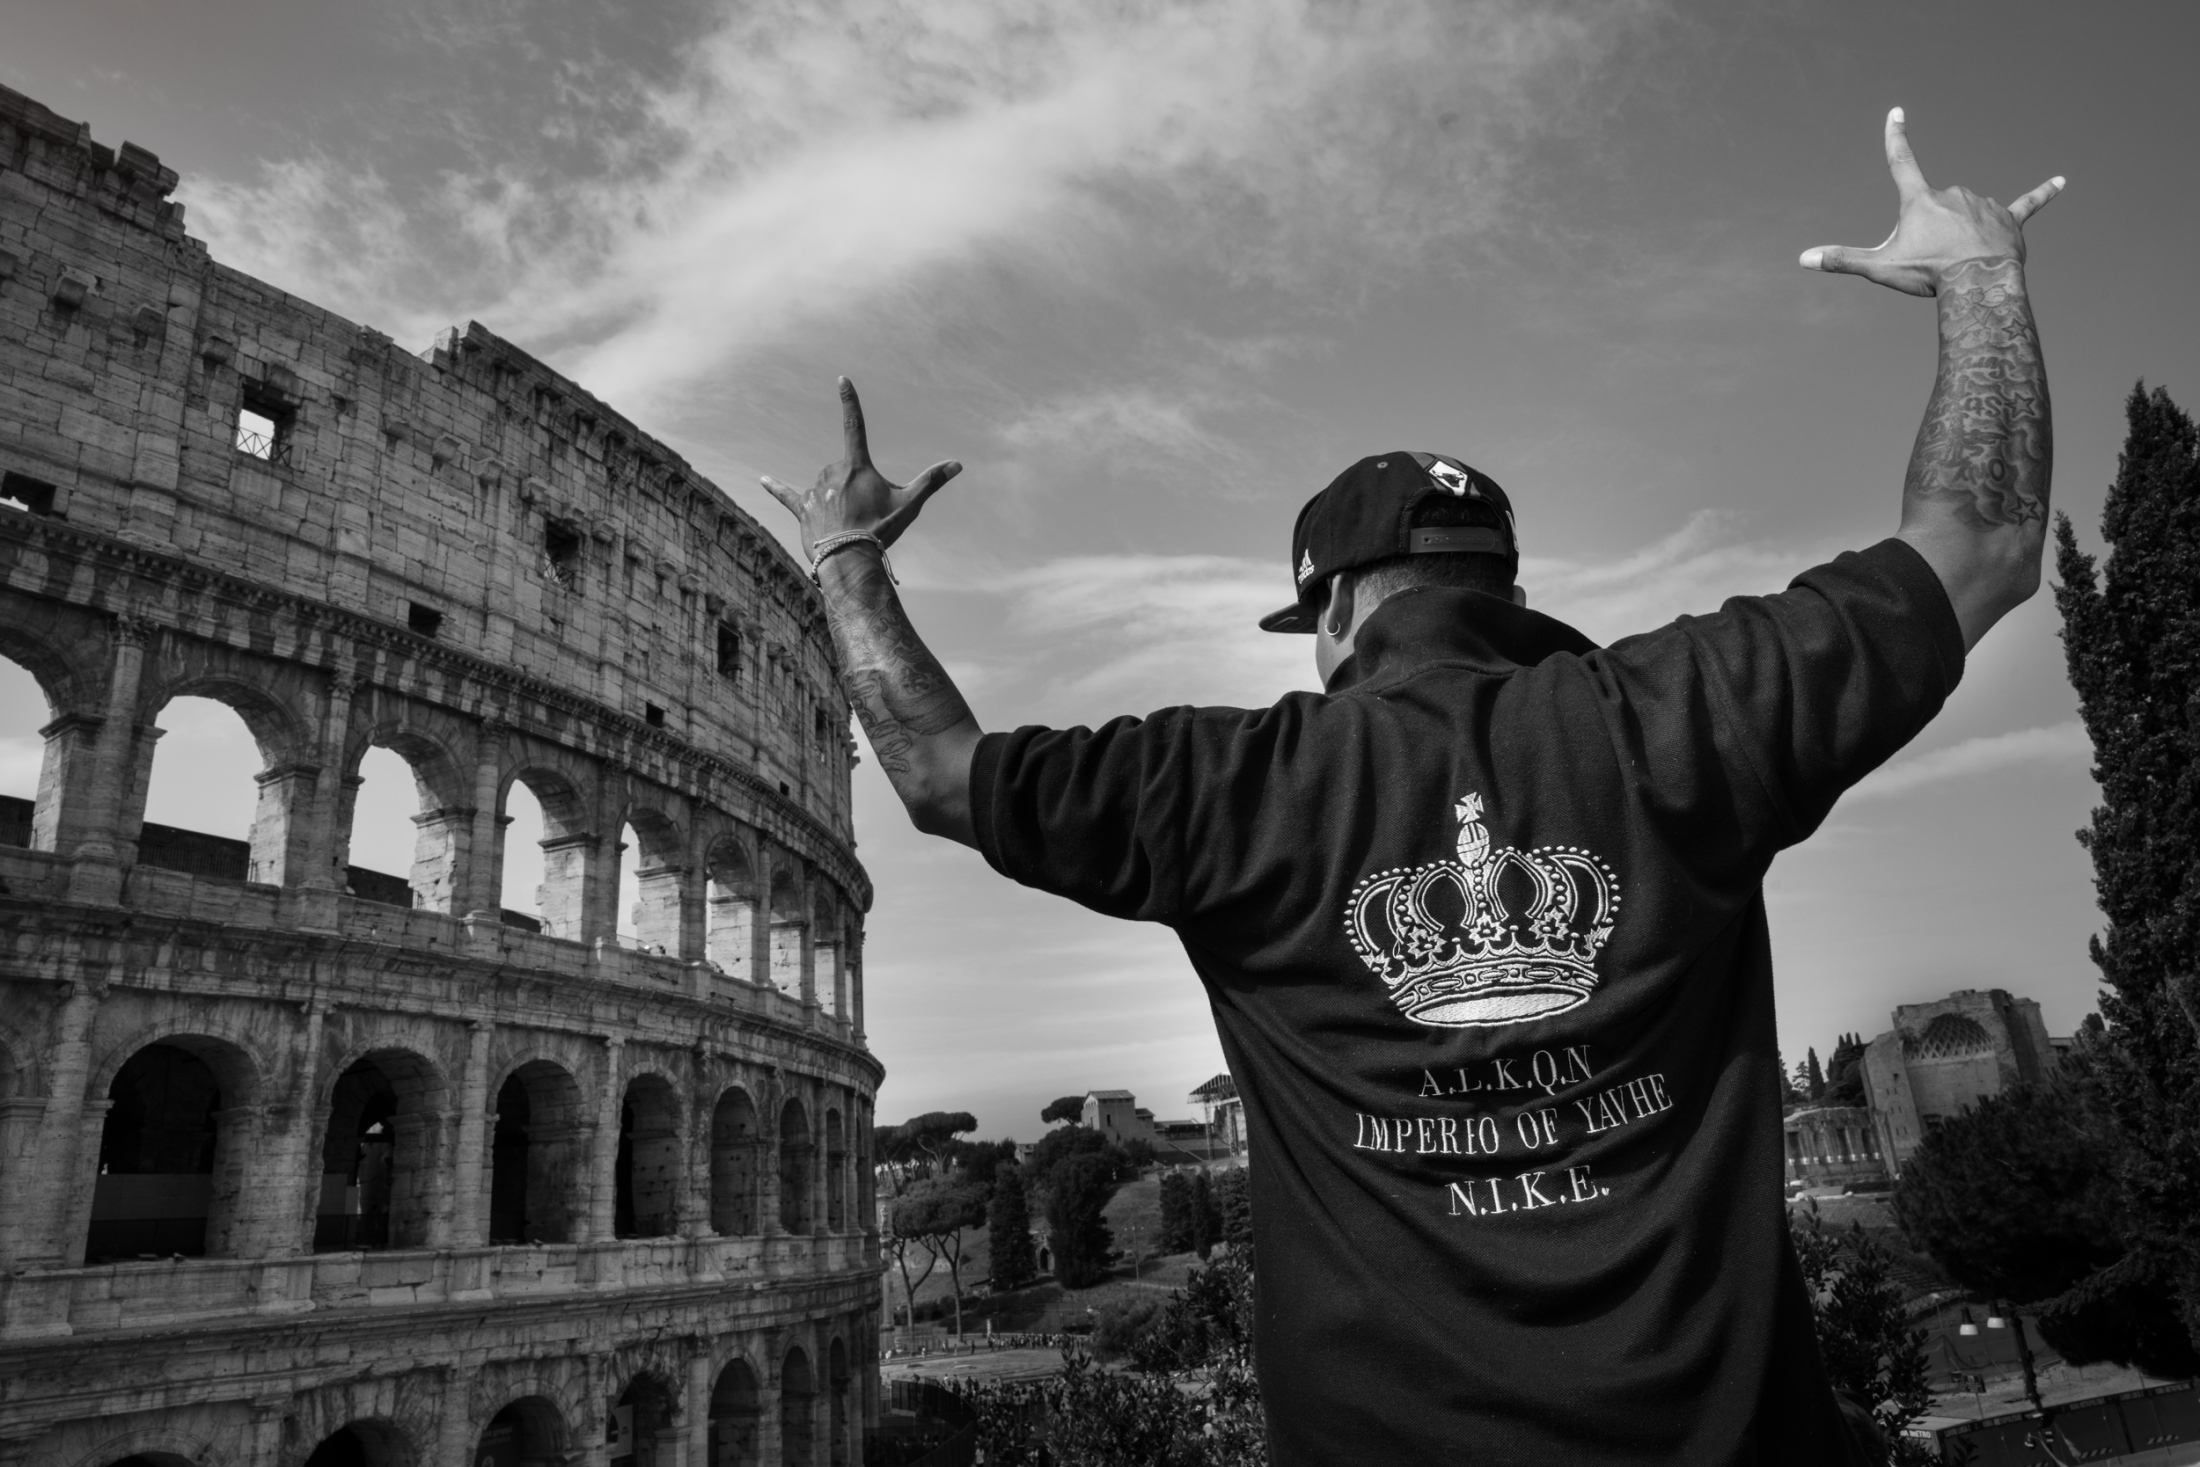 King Caos lifts his hands doing a 3 point crown sign beside the Roman Colosseum during a meeting of the Italian Latin Kings in Rome.